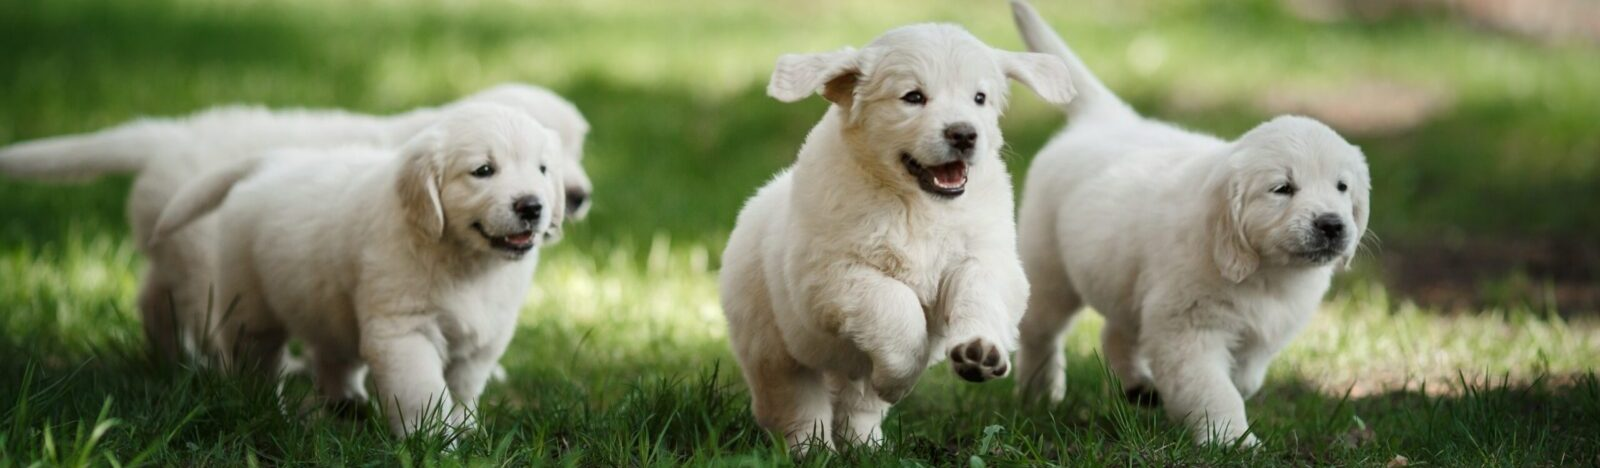 puppies running in grass